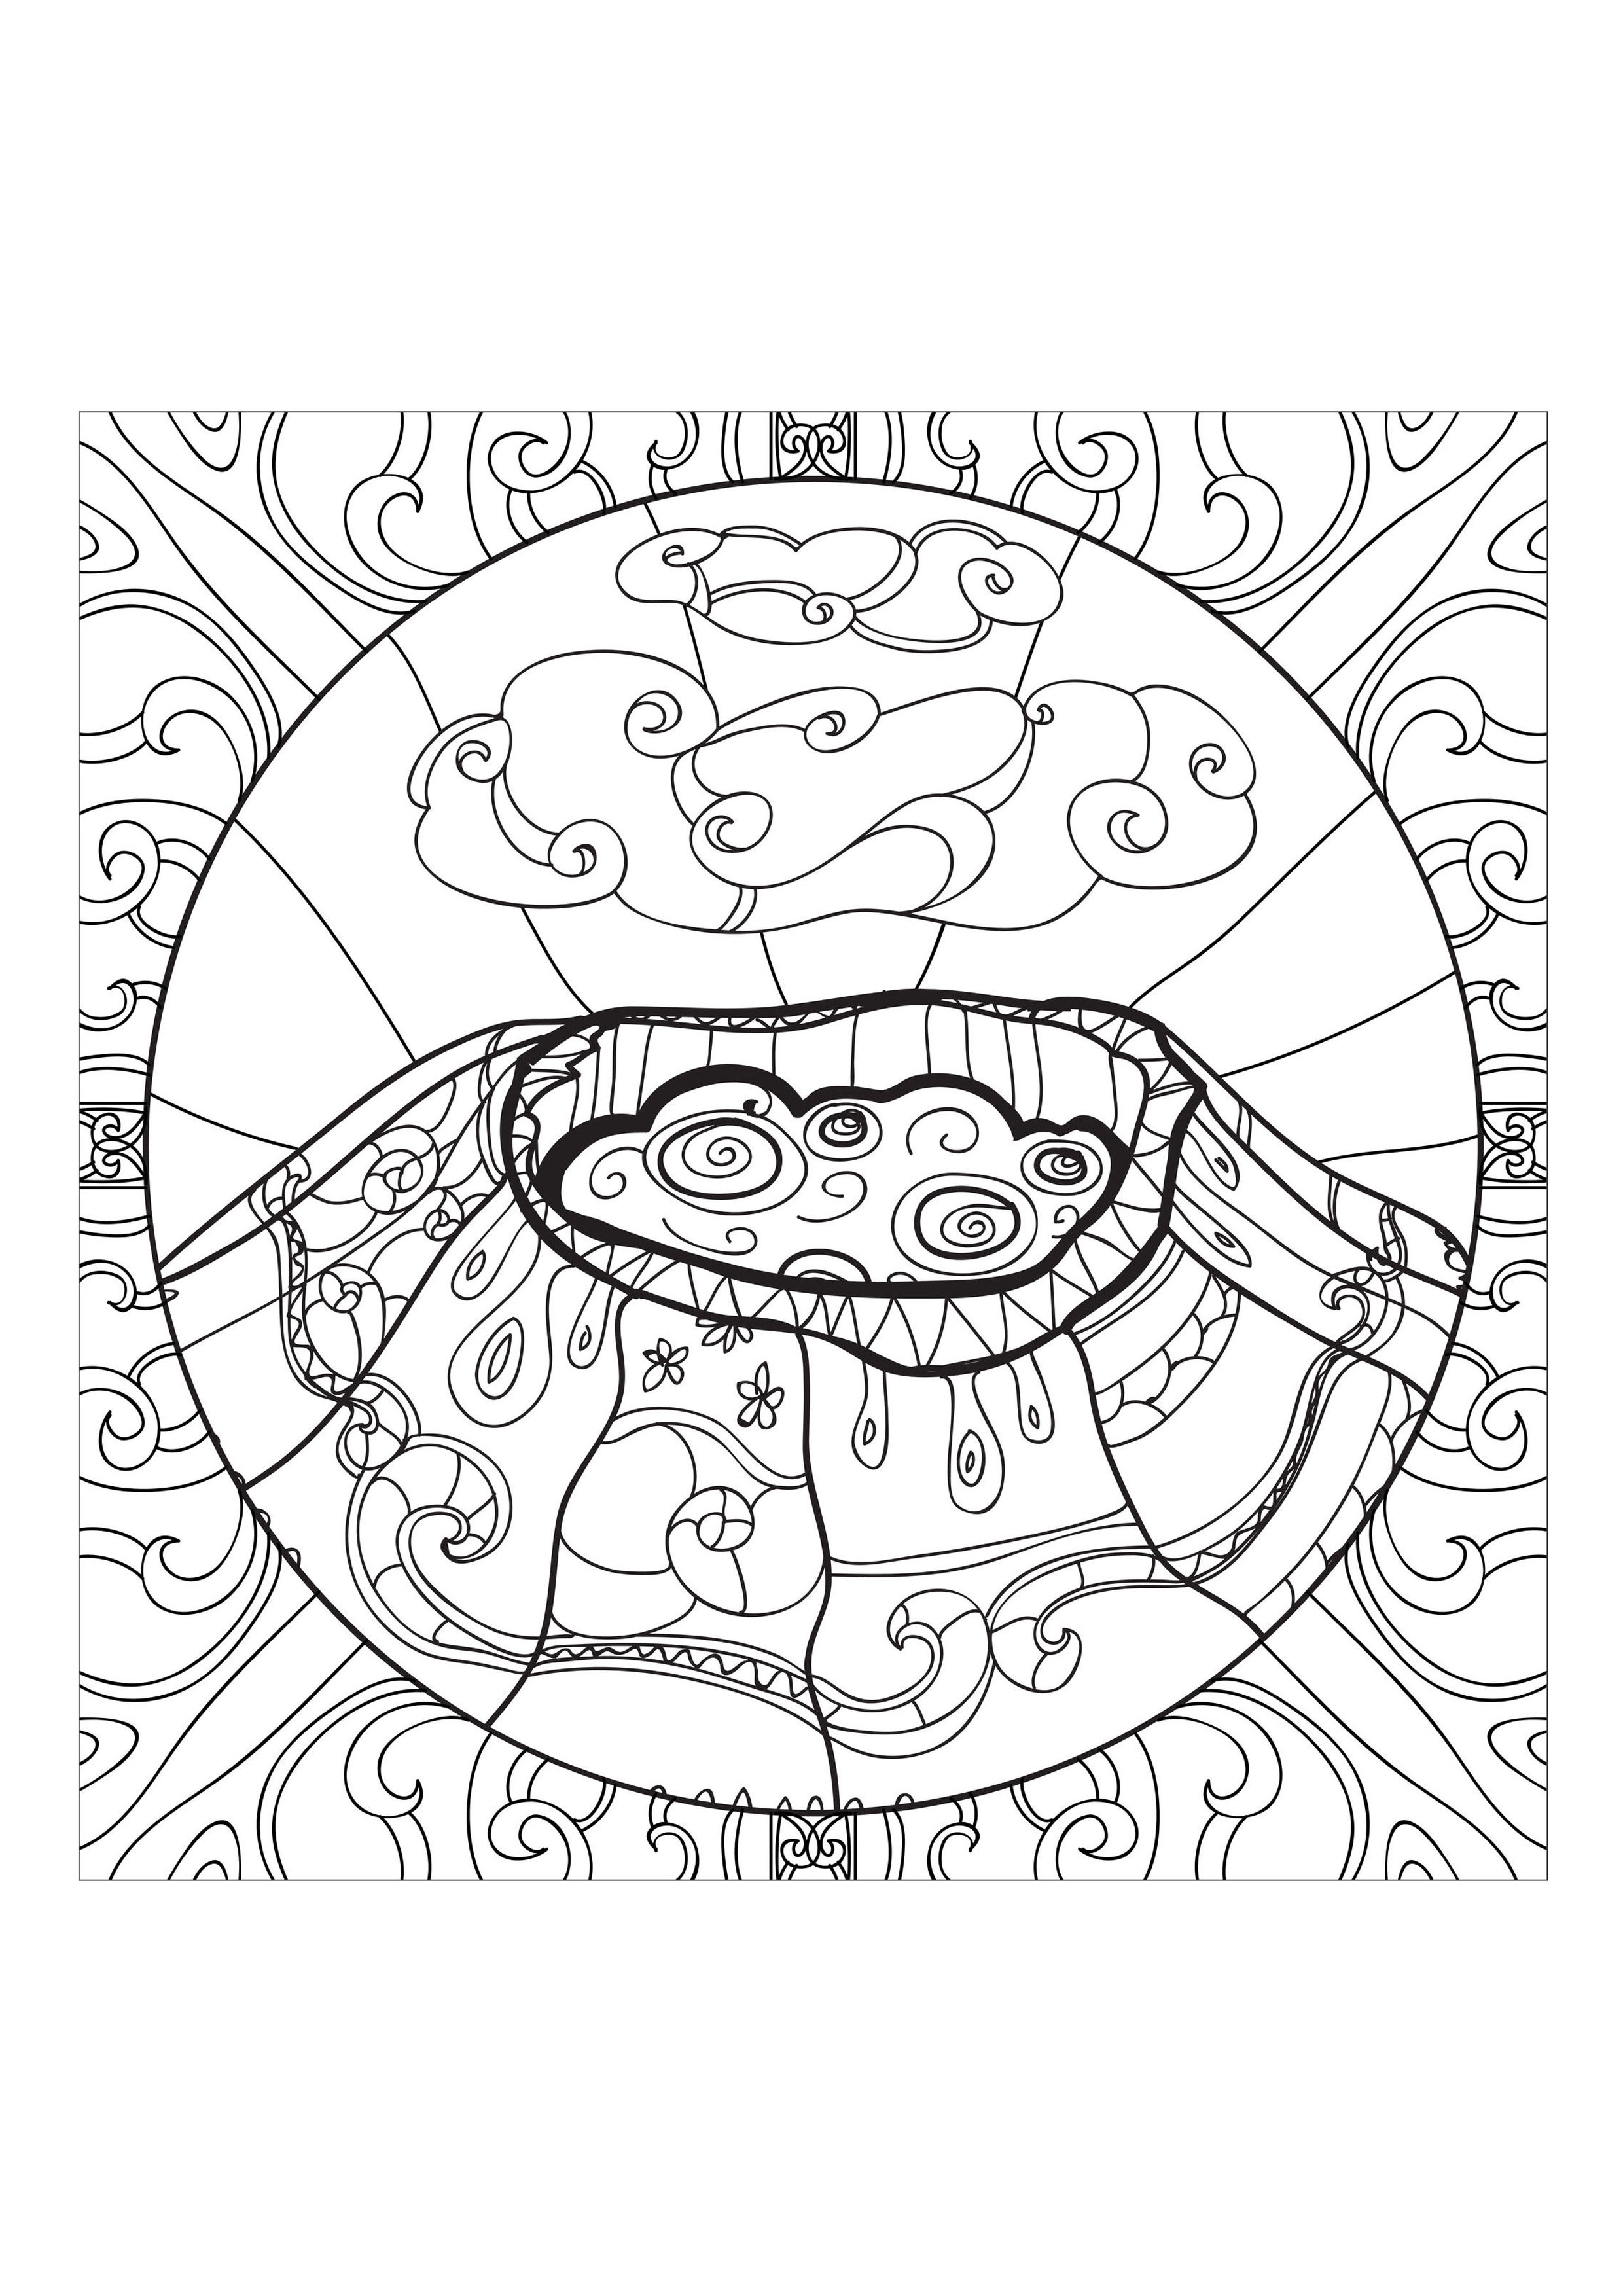 Coloring page volcano 1 a volcano in eruption soon